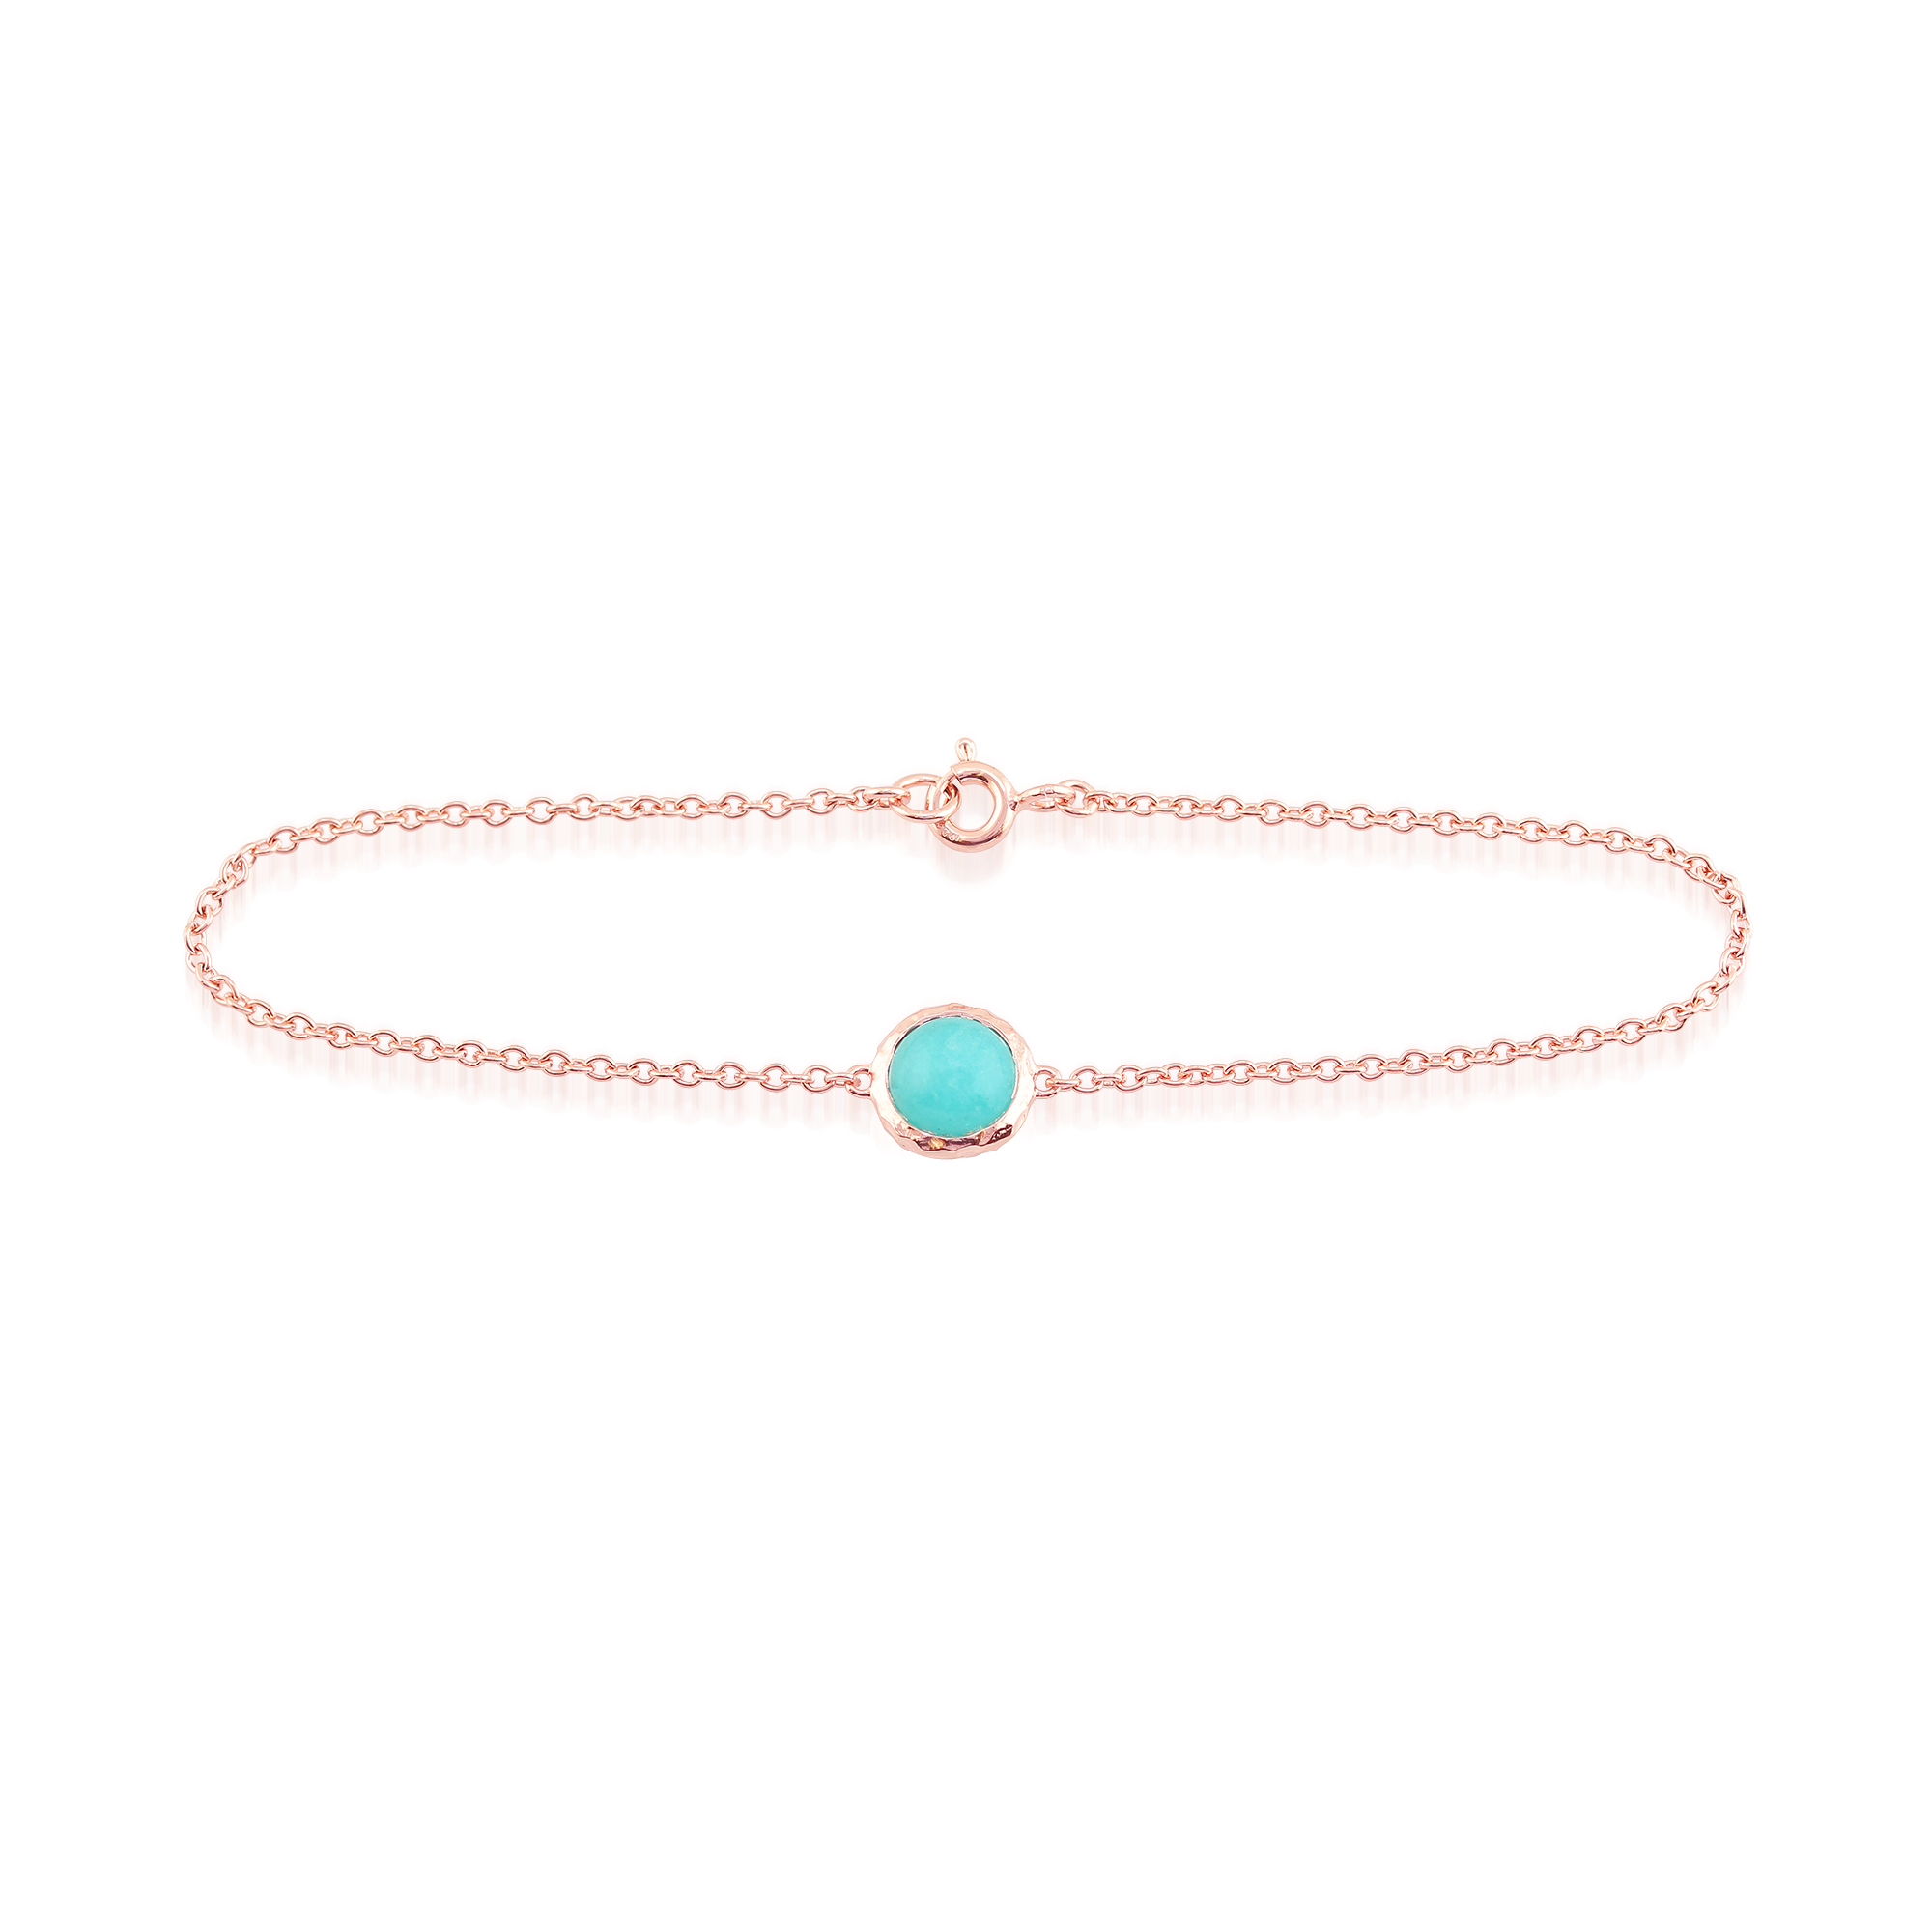 Amazonite 'Irida' Pastel Bracelet in 9ct Rose Gold Plated Sterling Silver